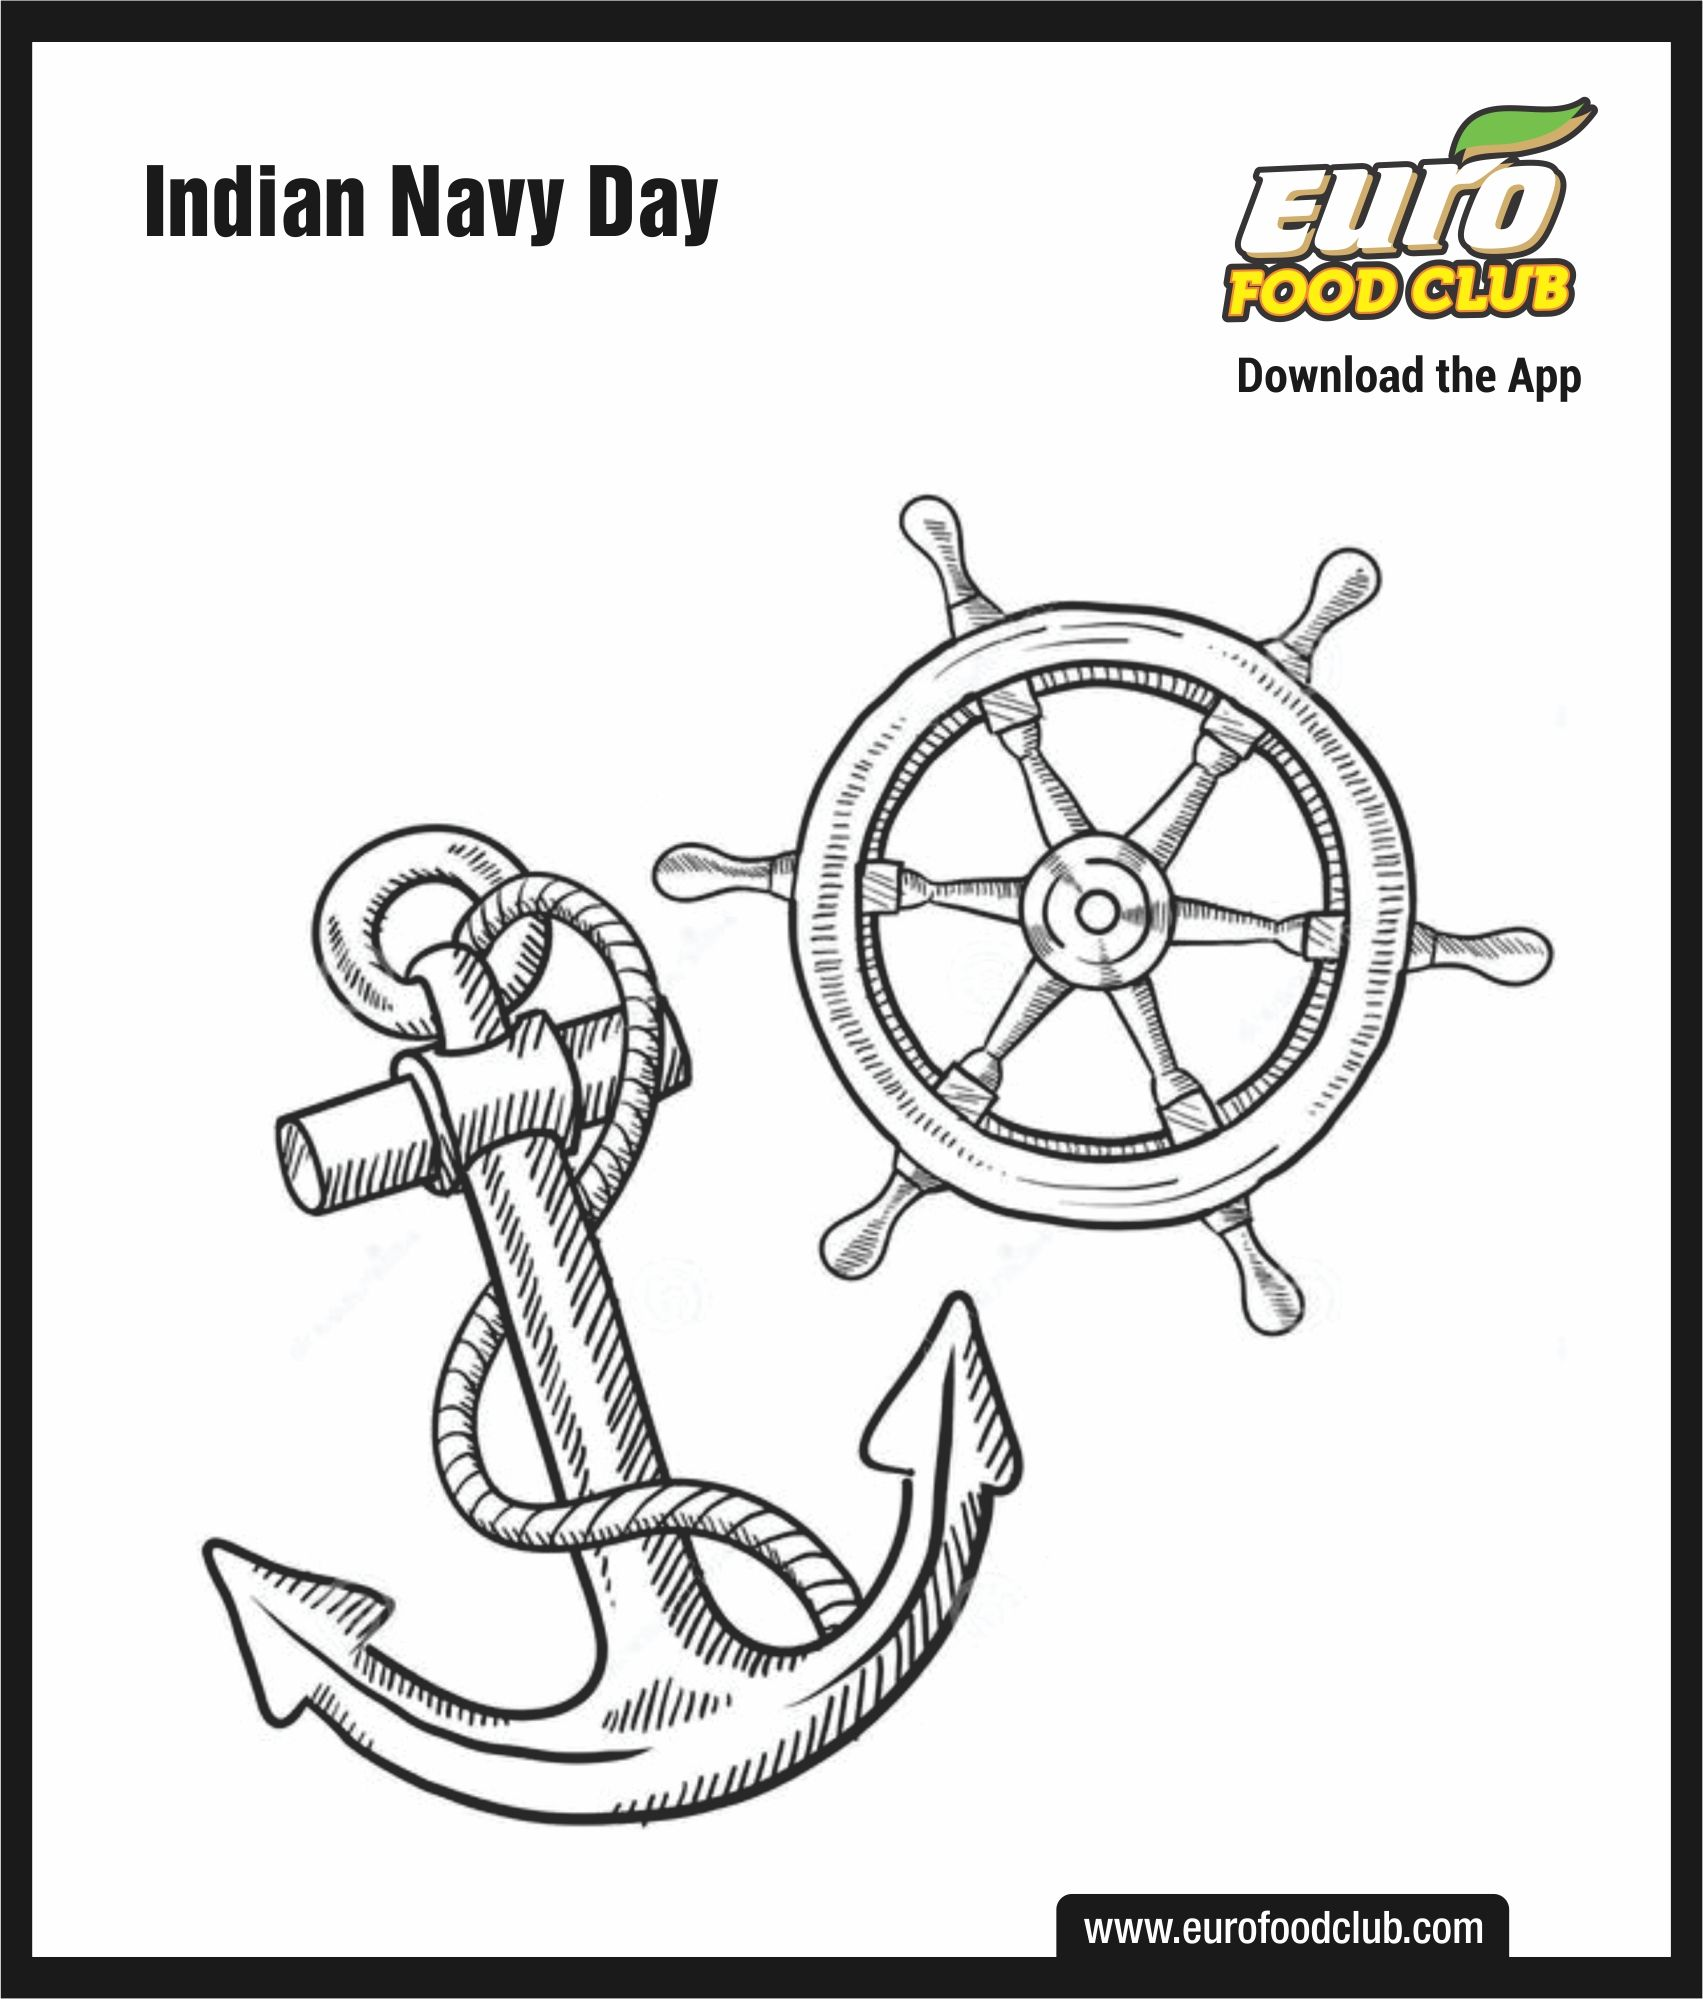 Navy Day Eurofoodclub Navyday Indiannavyday Navyday2017 Indian Navy Day Navy Day Indian Navy